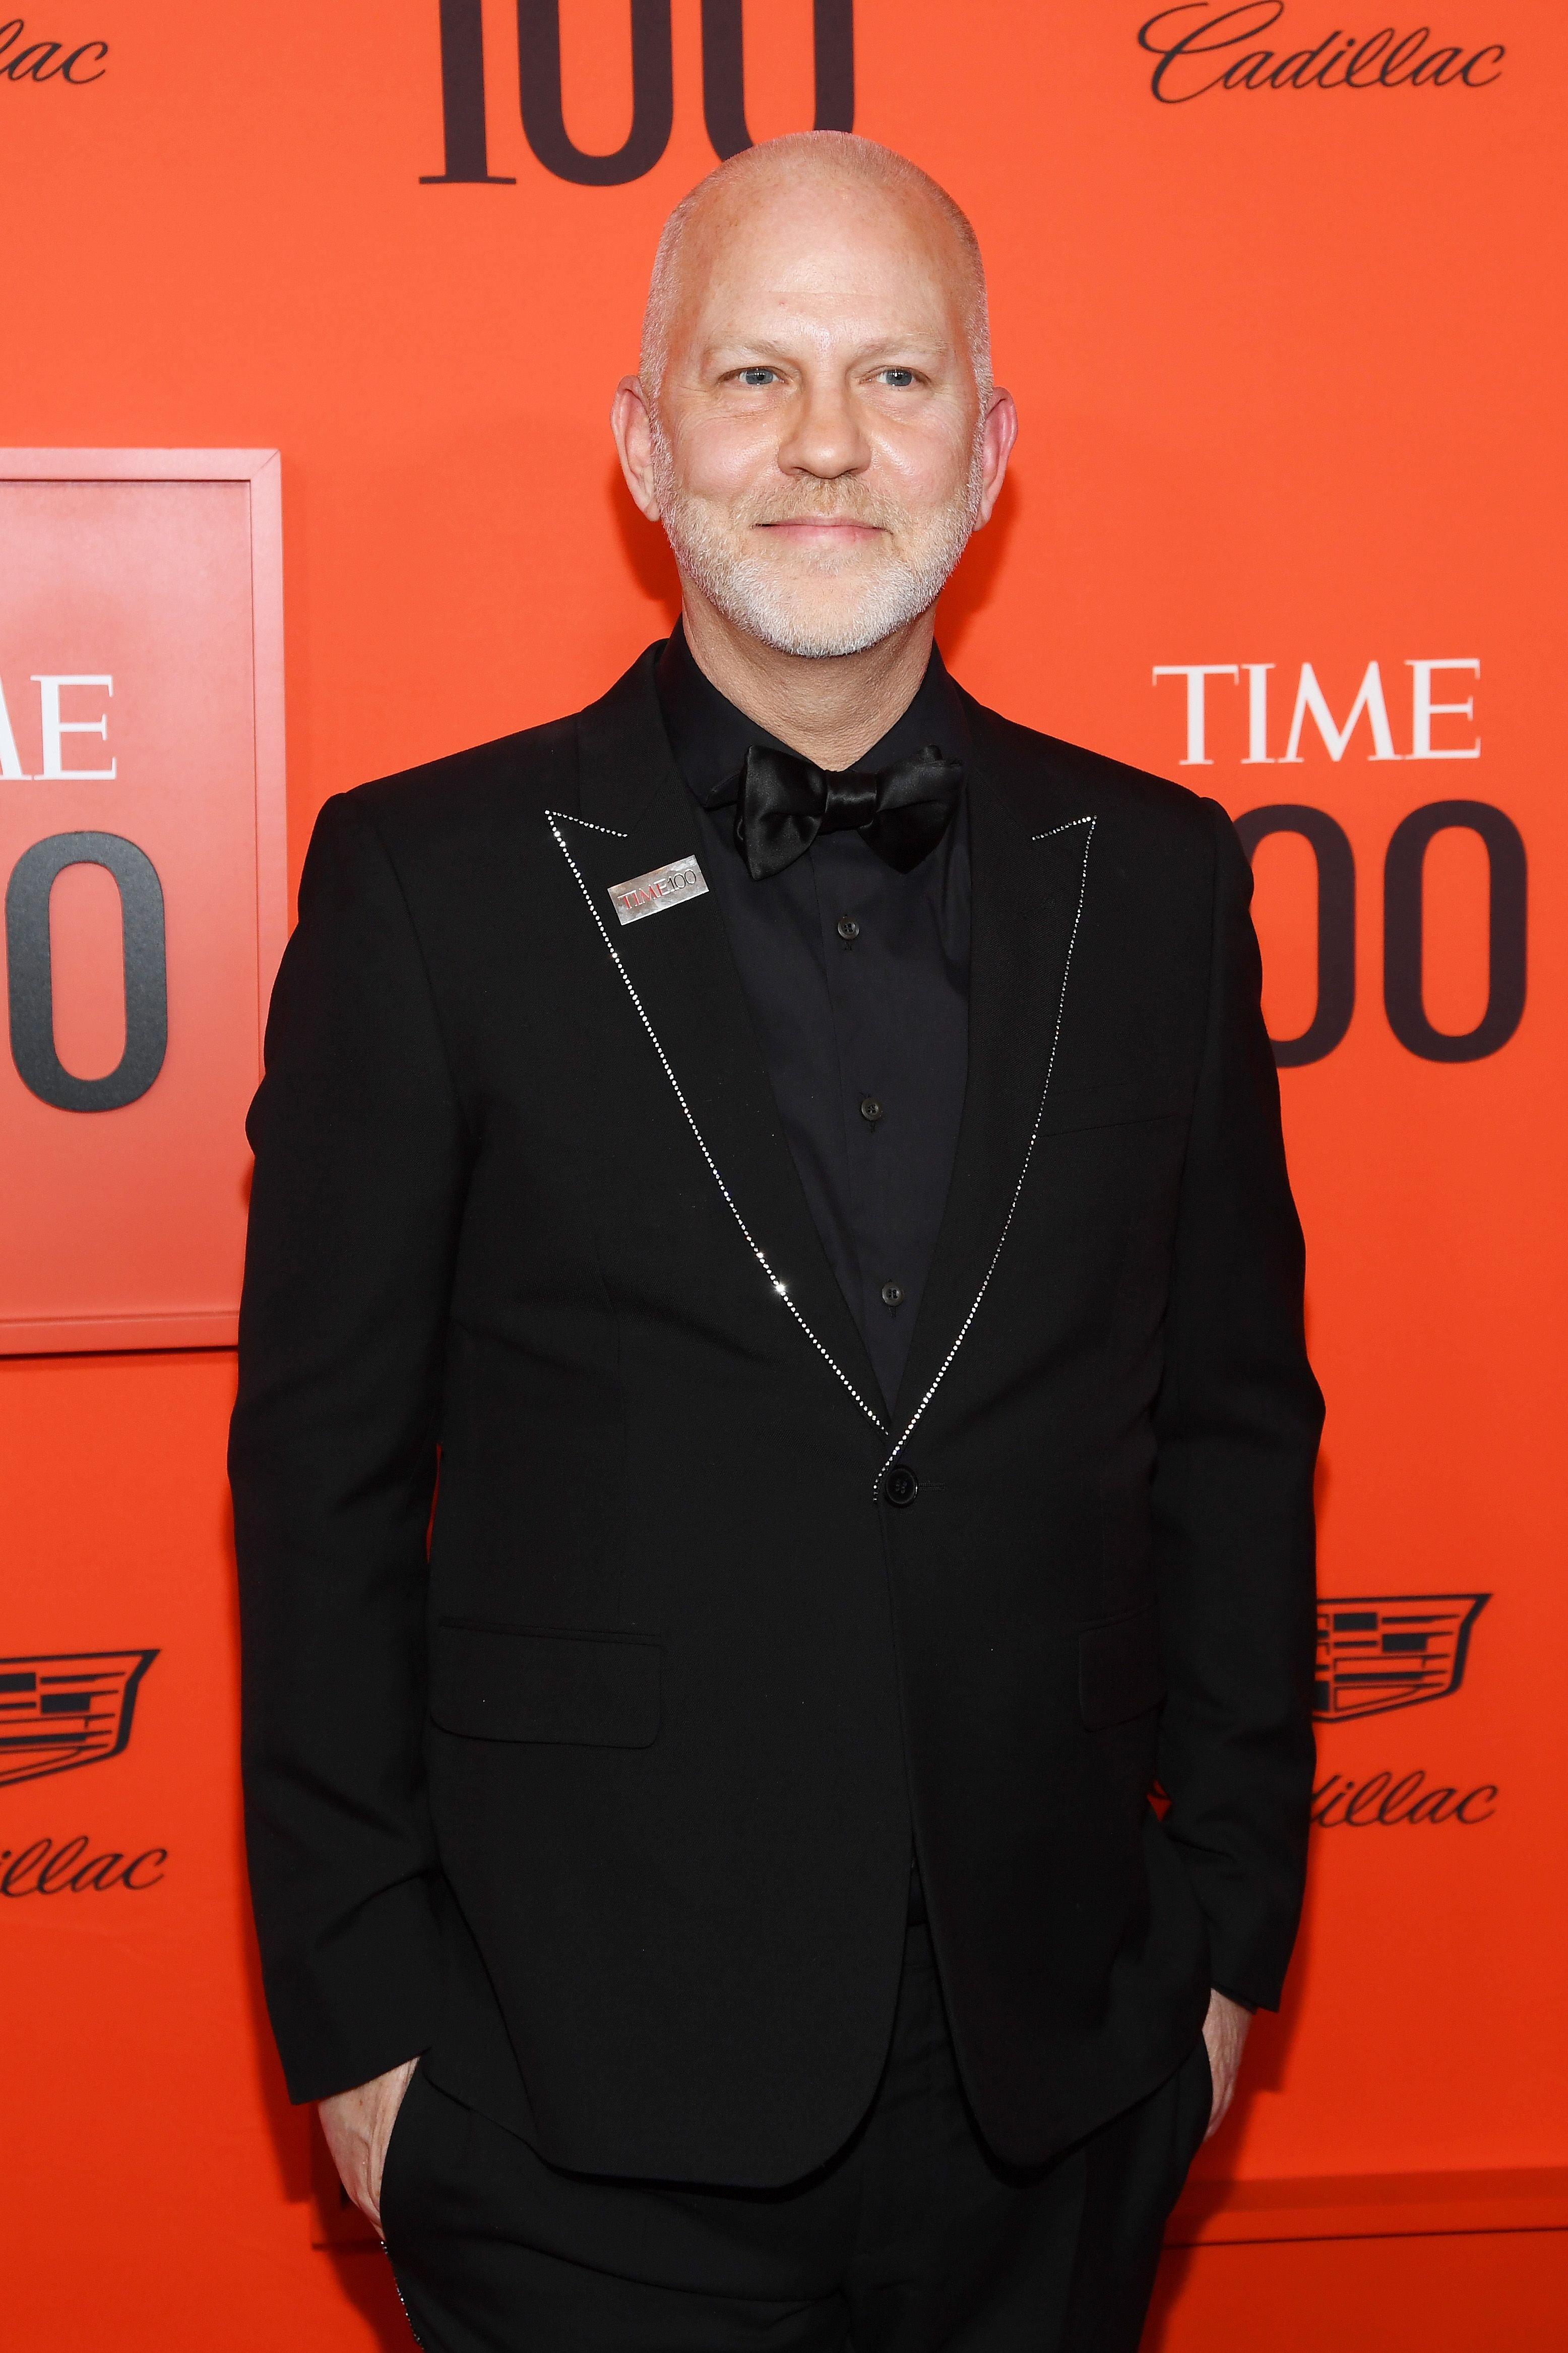 Ryan Murphy at the TIME 100 Gala Red Carpet at Jazz at Lincoln Center on April 23, 2019 in New York City | Photo: Getty Images